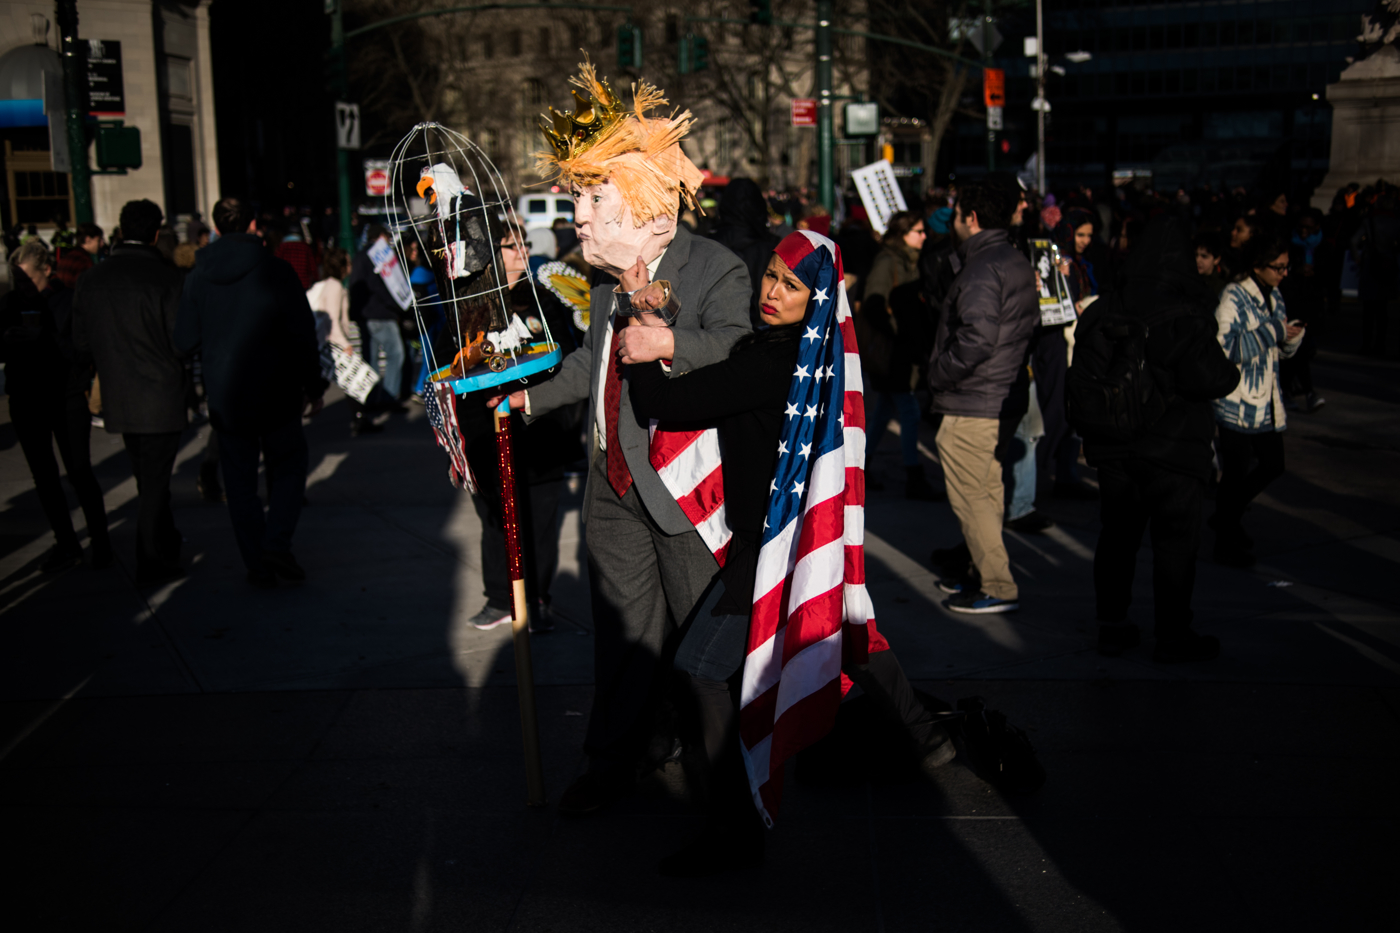 Protestors dressed as President Donald Trump and a shackled Muslim immigrant stand in Battery Park, New York, NY on Saturday, January 29, 2017. Credit: Mark Kauzlarich for CNN